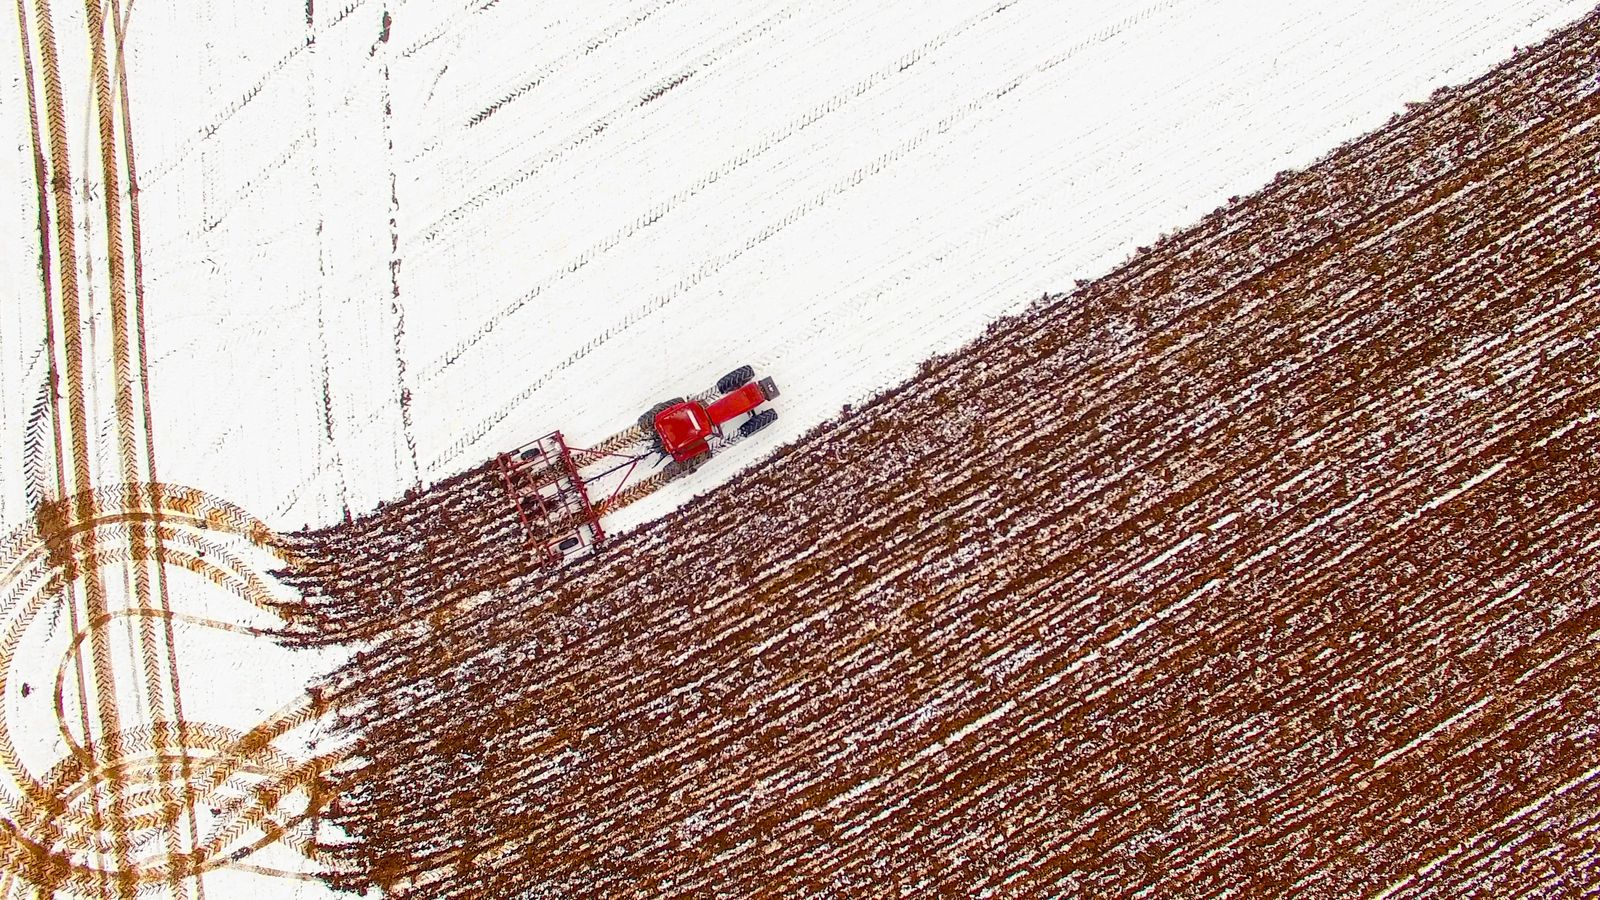 Aerial view of tractor tilling snow covered field in Winter.